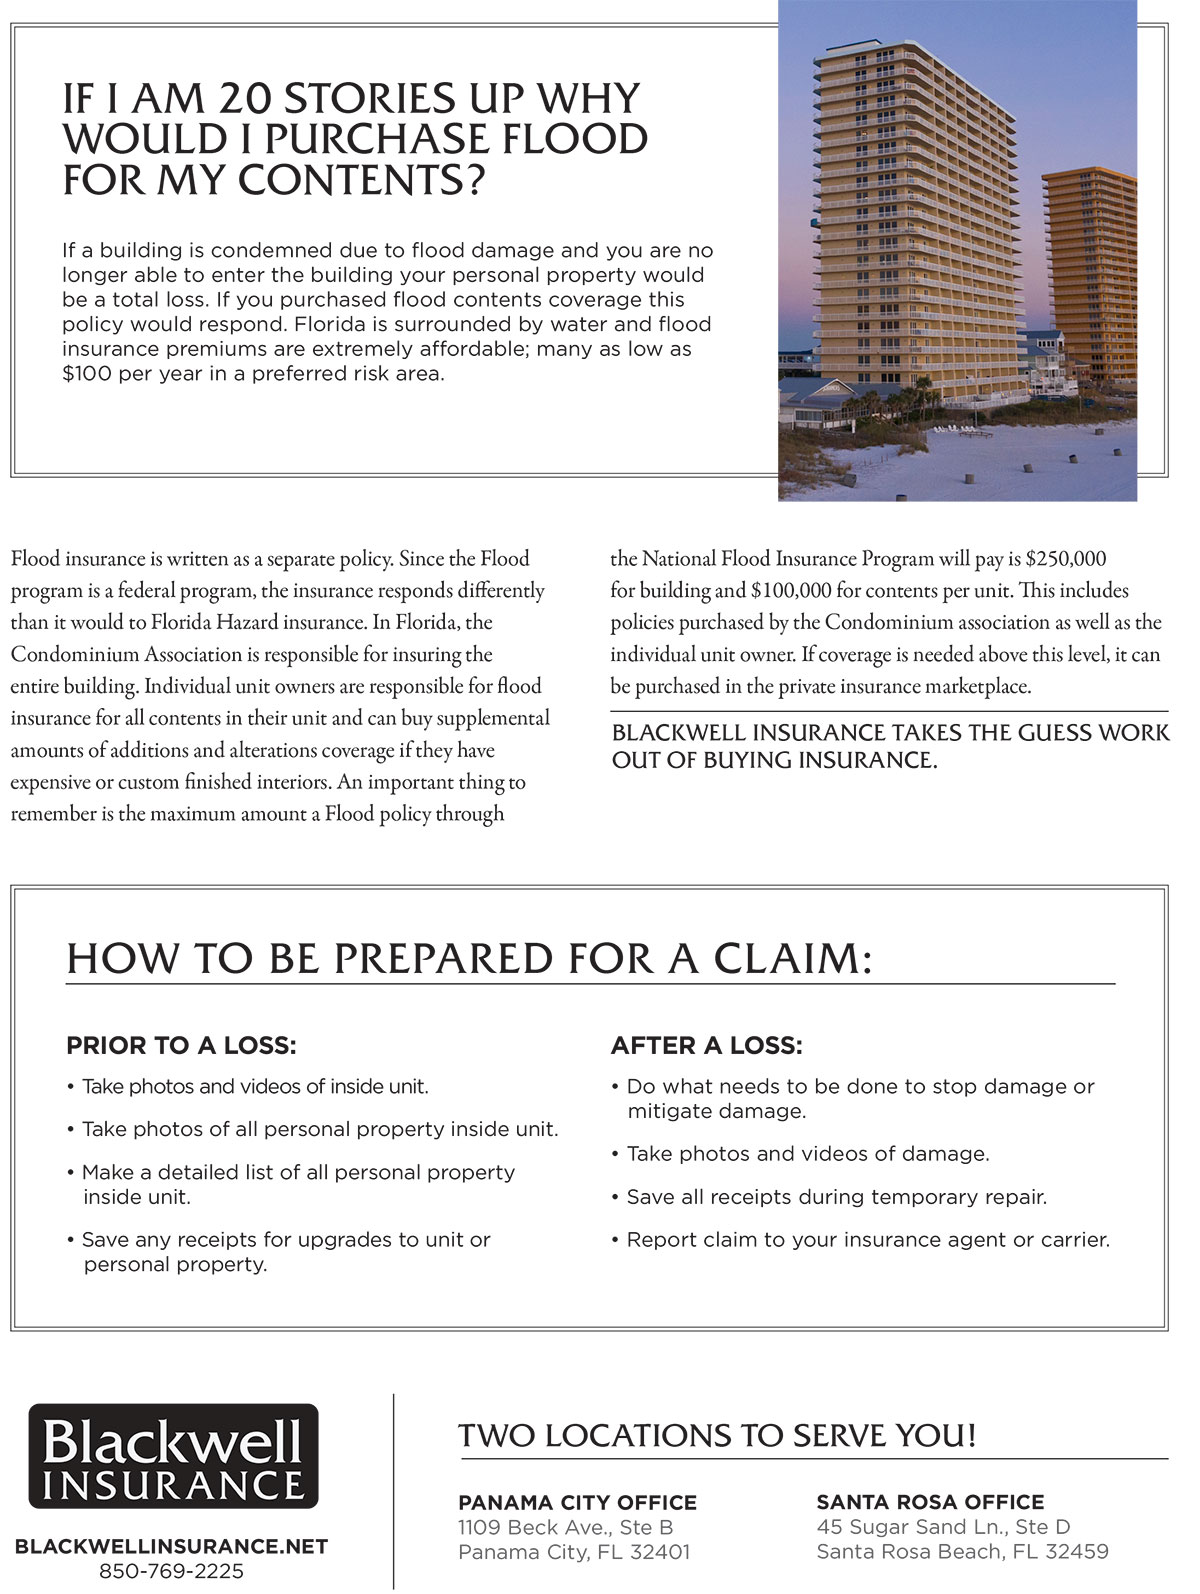 Panama City Condo Owners Insurance Guide p2